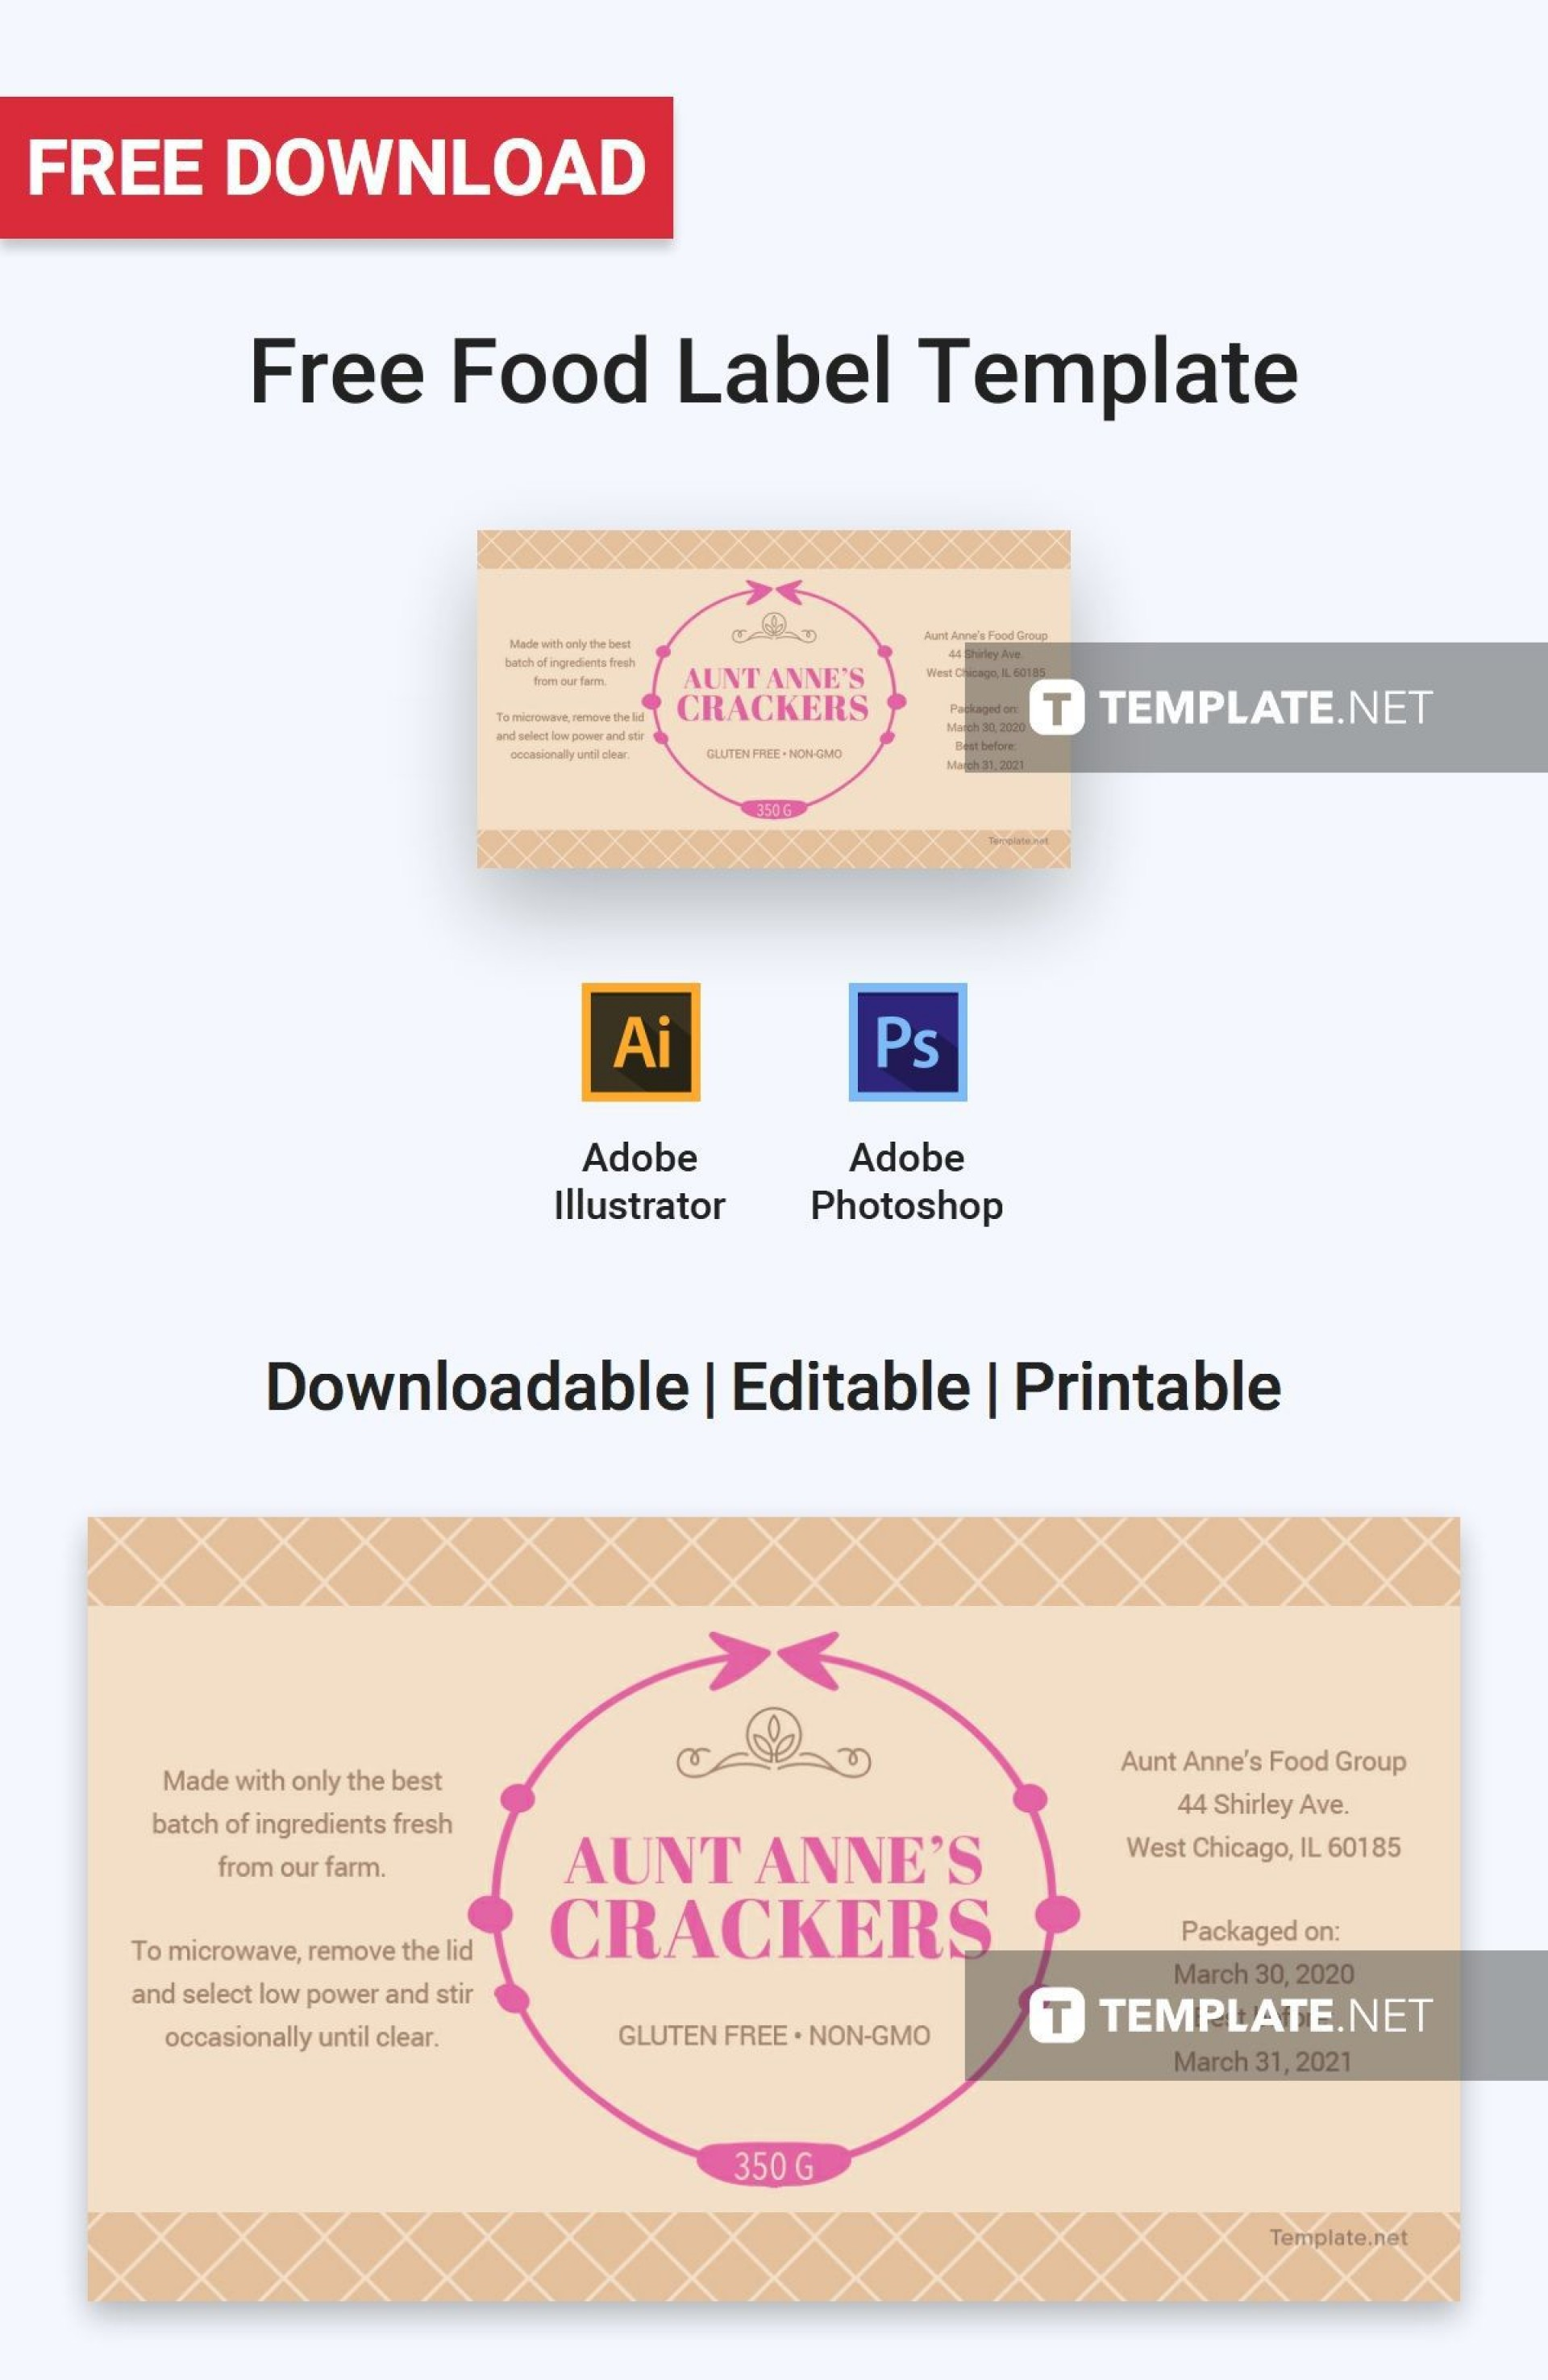 006 Phenomenal Microsoft Word Label Template Free Download High Definition 1920